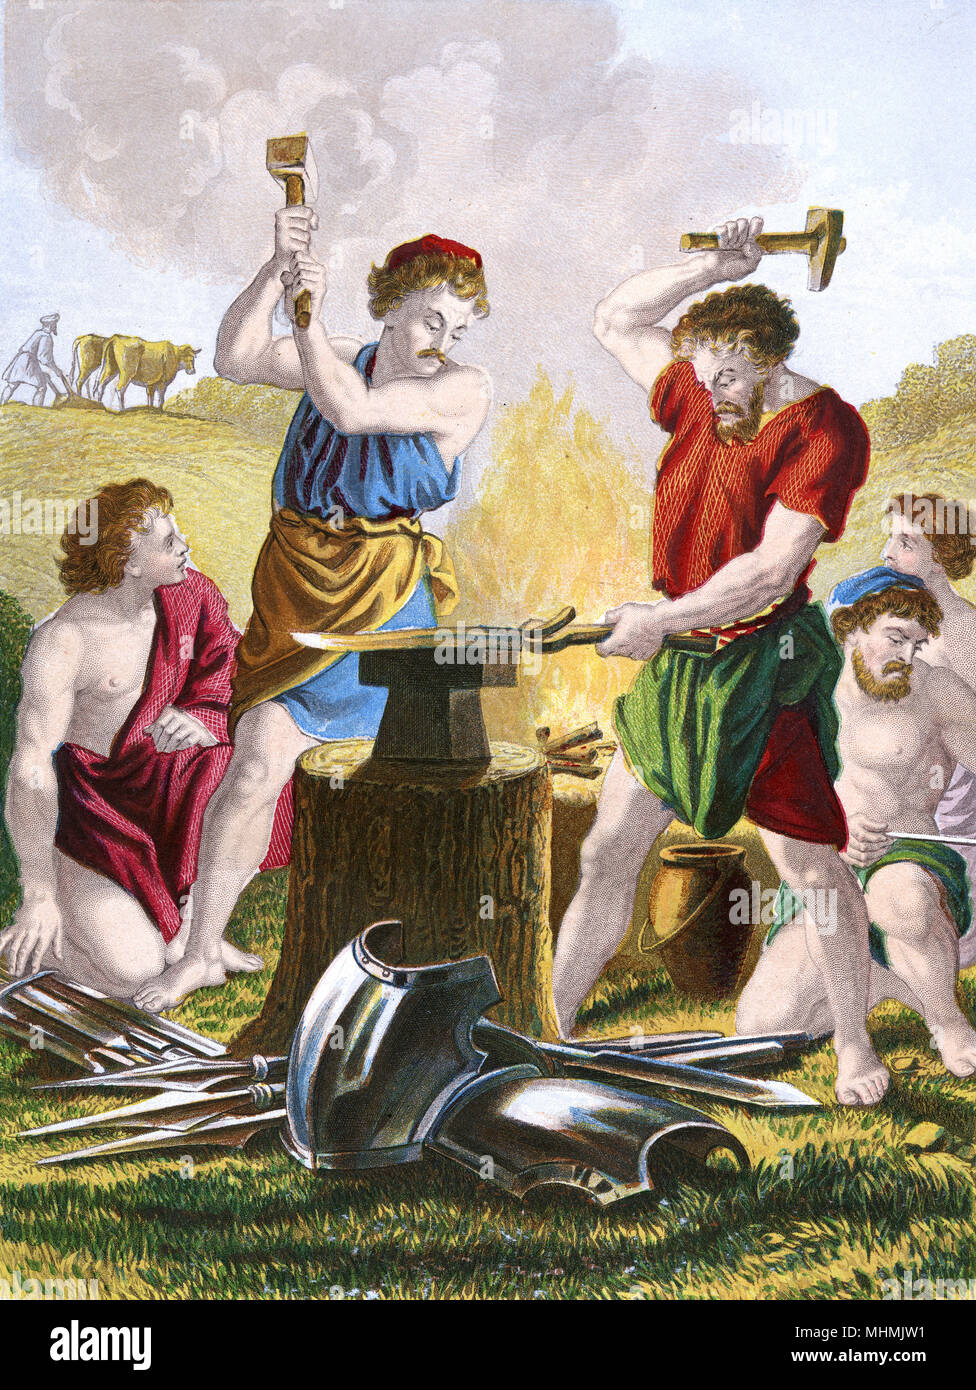 Two smiths beat swords into plowshares, which are much more useful       Date: circa 1860 - Stock Image